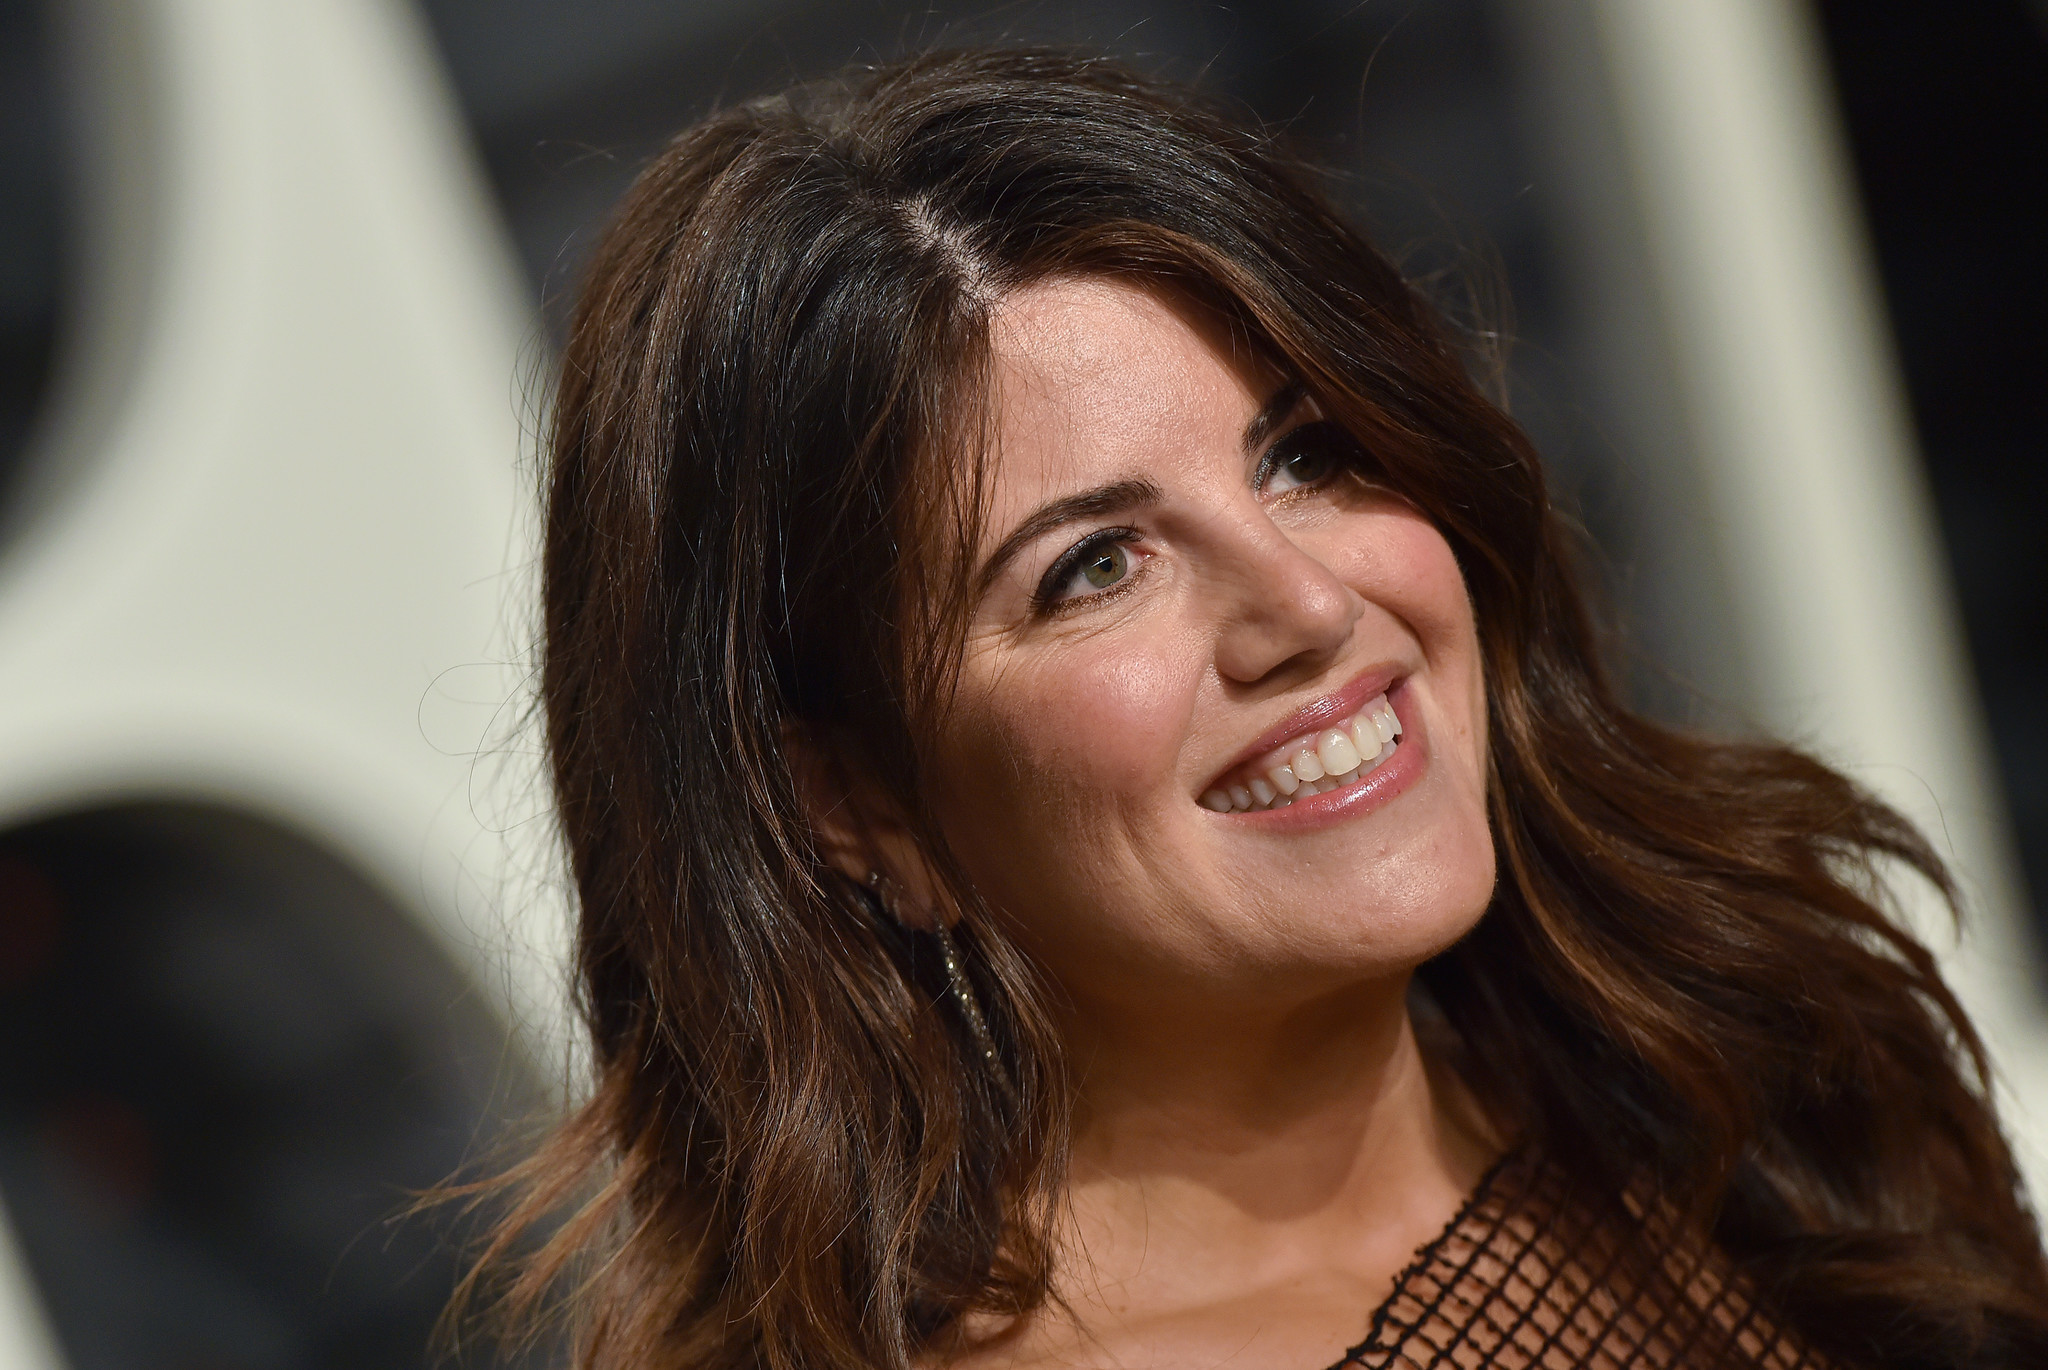 monica lewinsky storms offstage after off limits clinton question